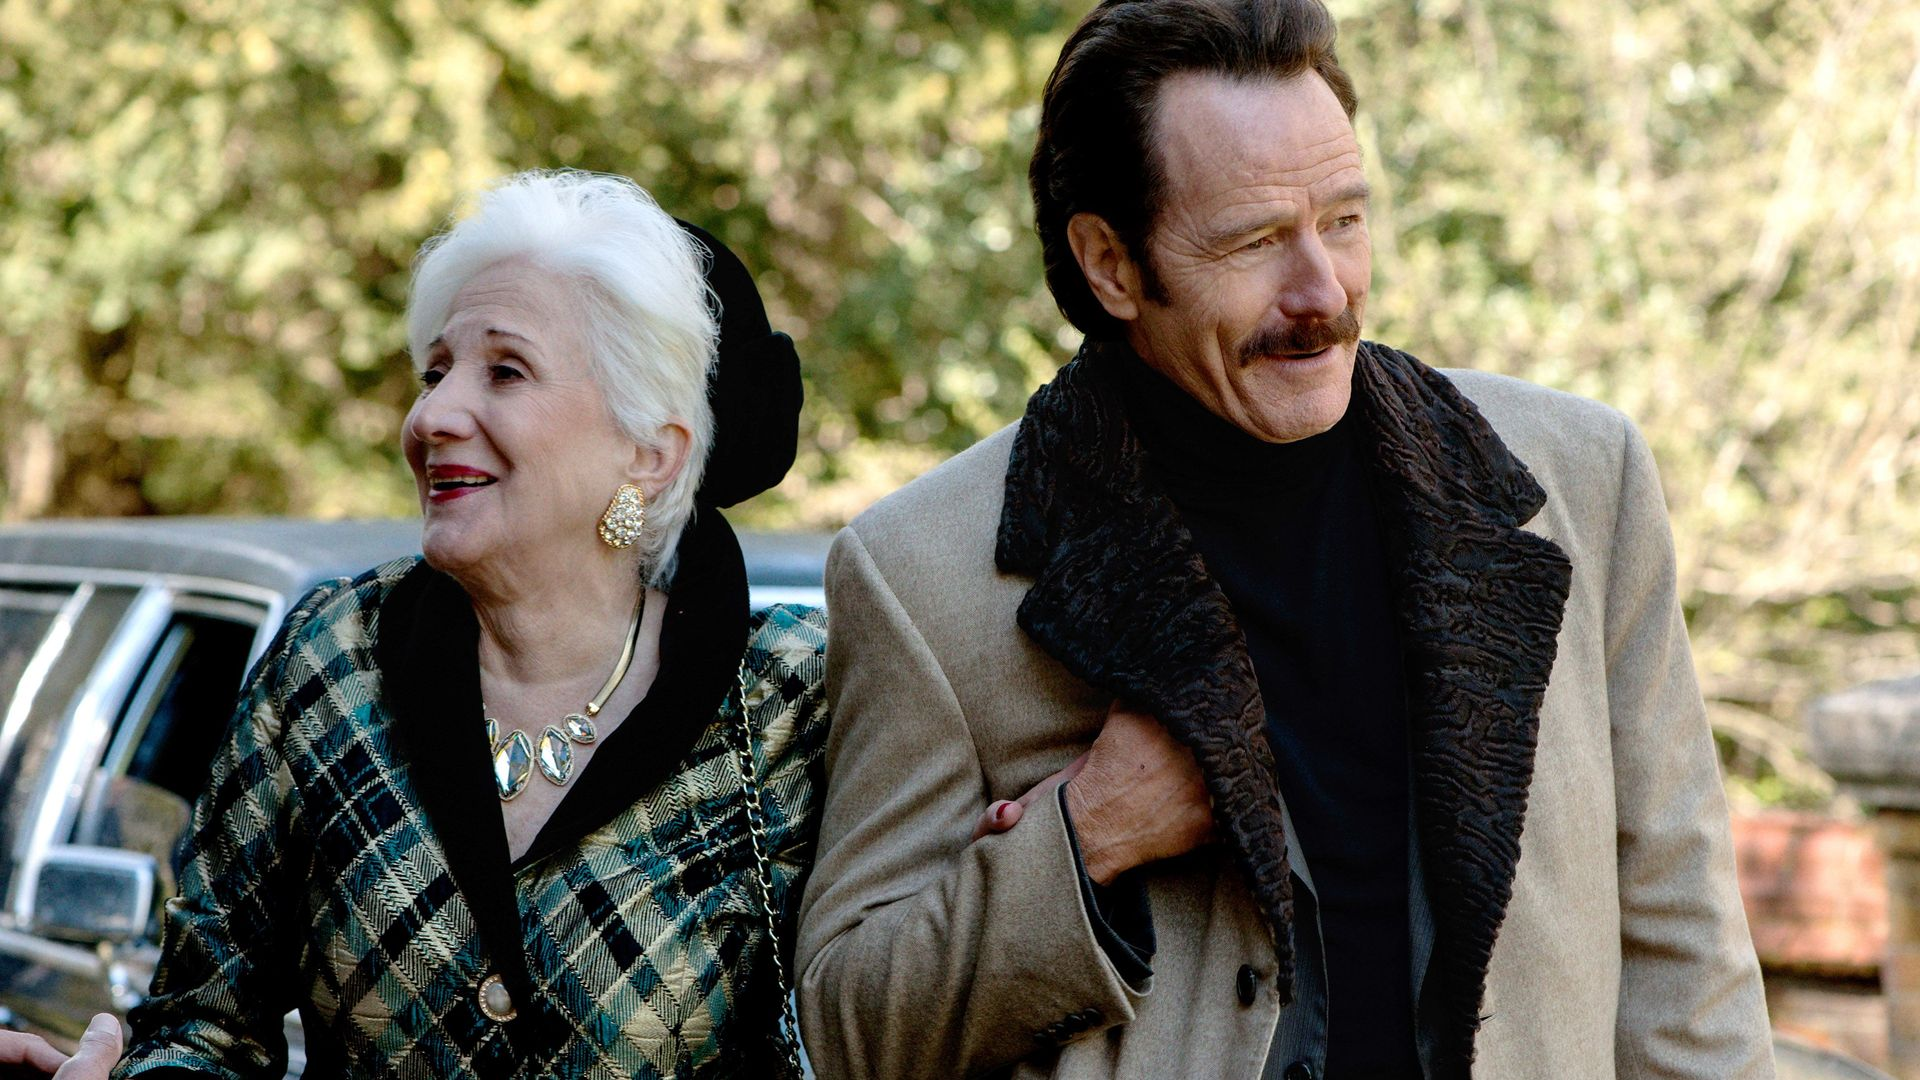 THE INFILTRATOR, from left: Olympia Dukakis, Bryan Cranston, 2016.